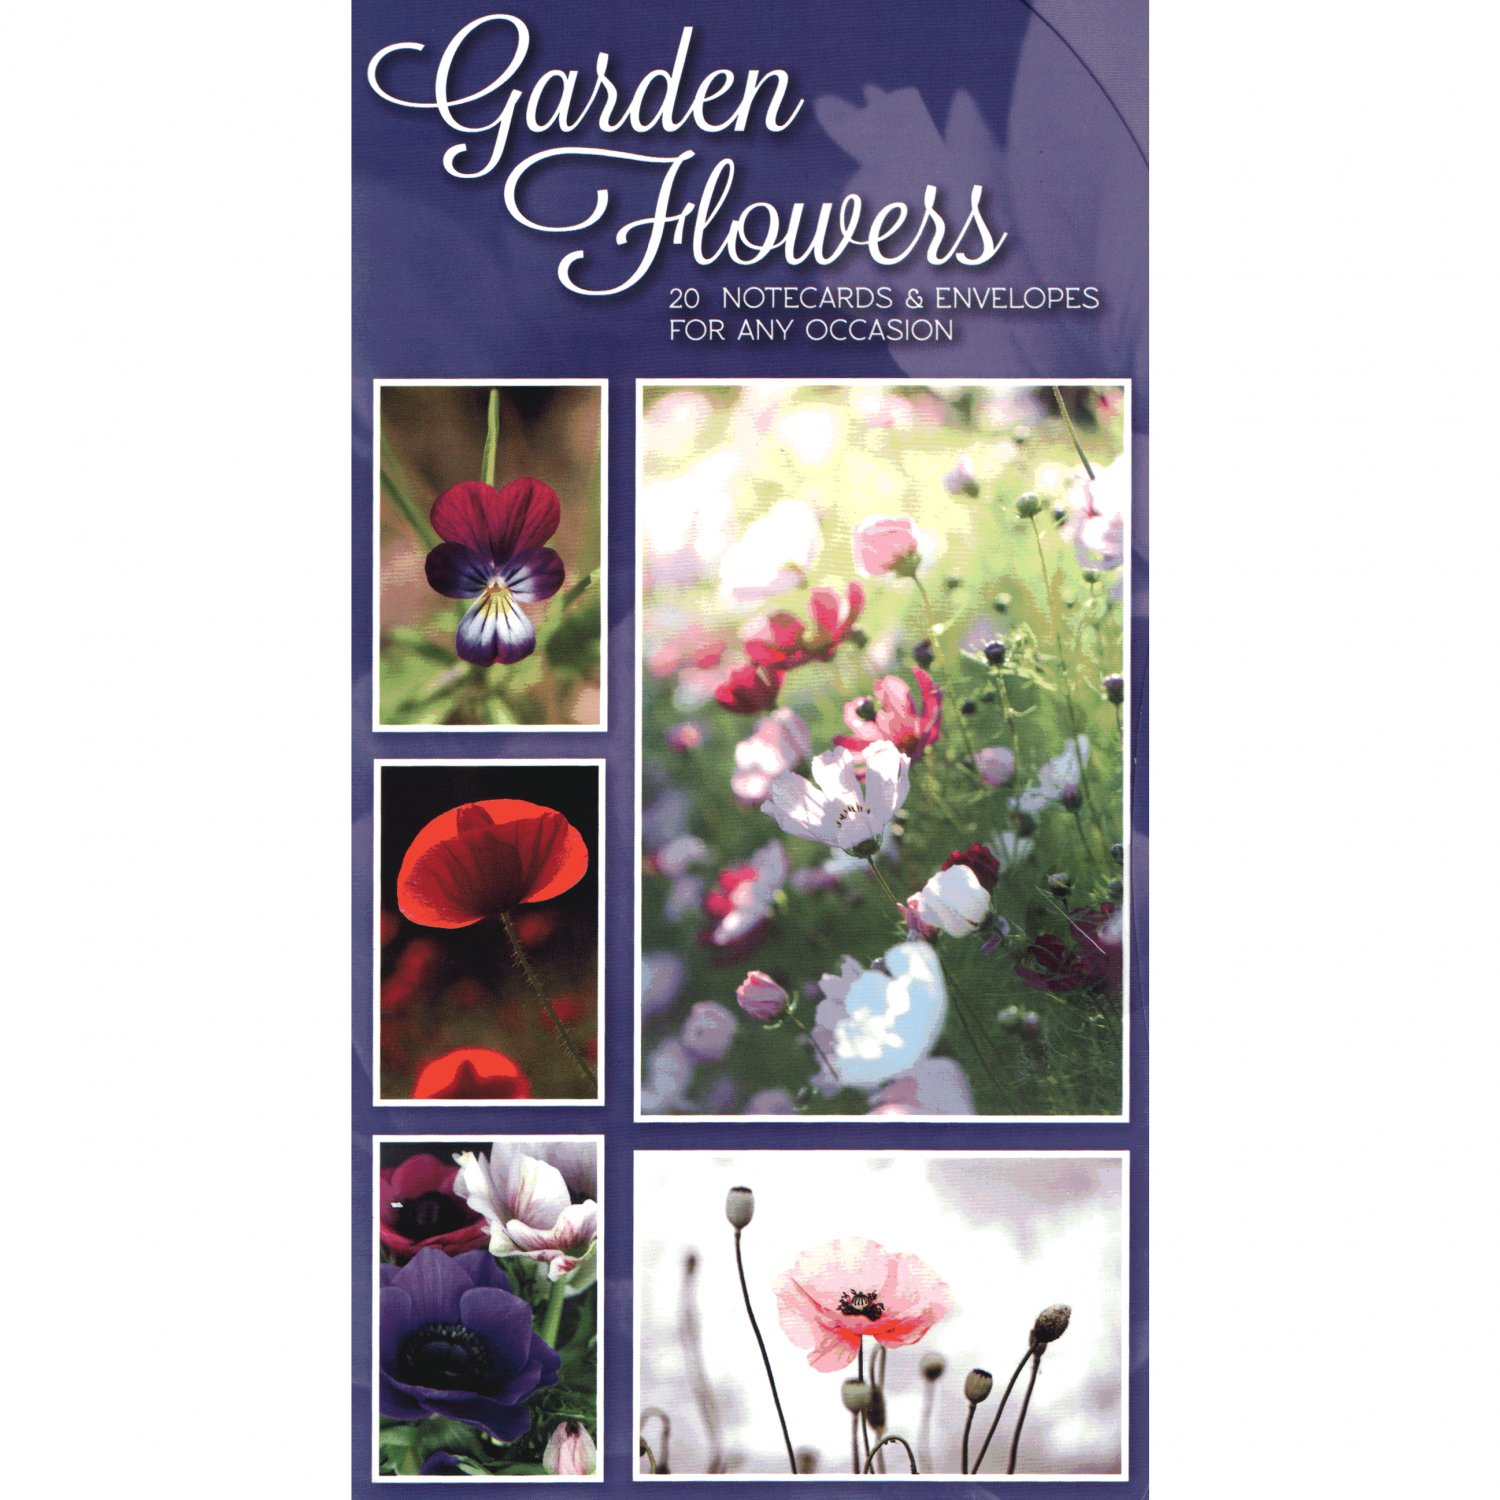 English Garden Flowers - Attractive Set of 20 Notecards and Envelopes